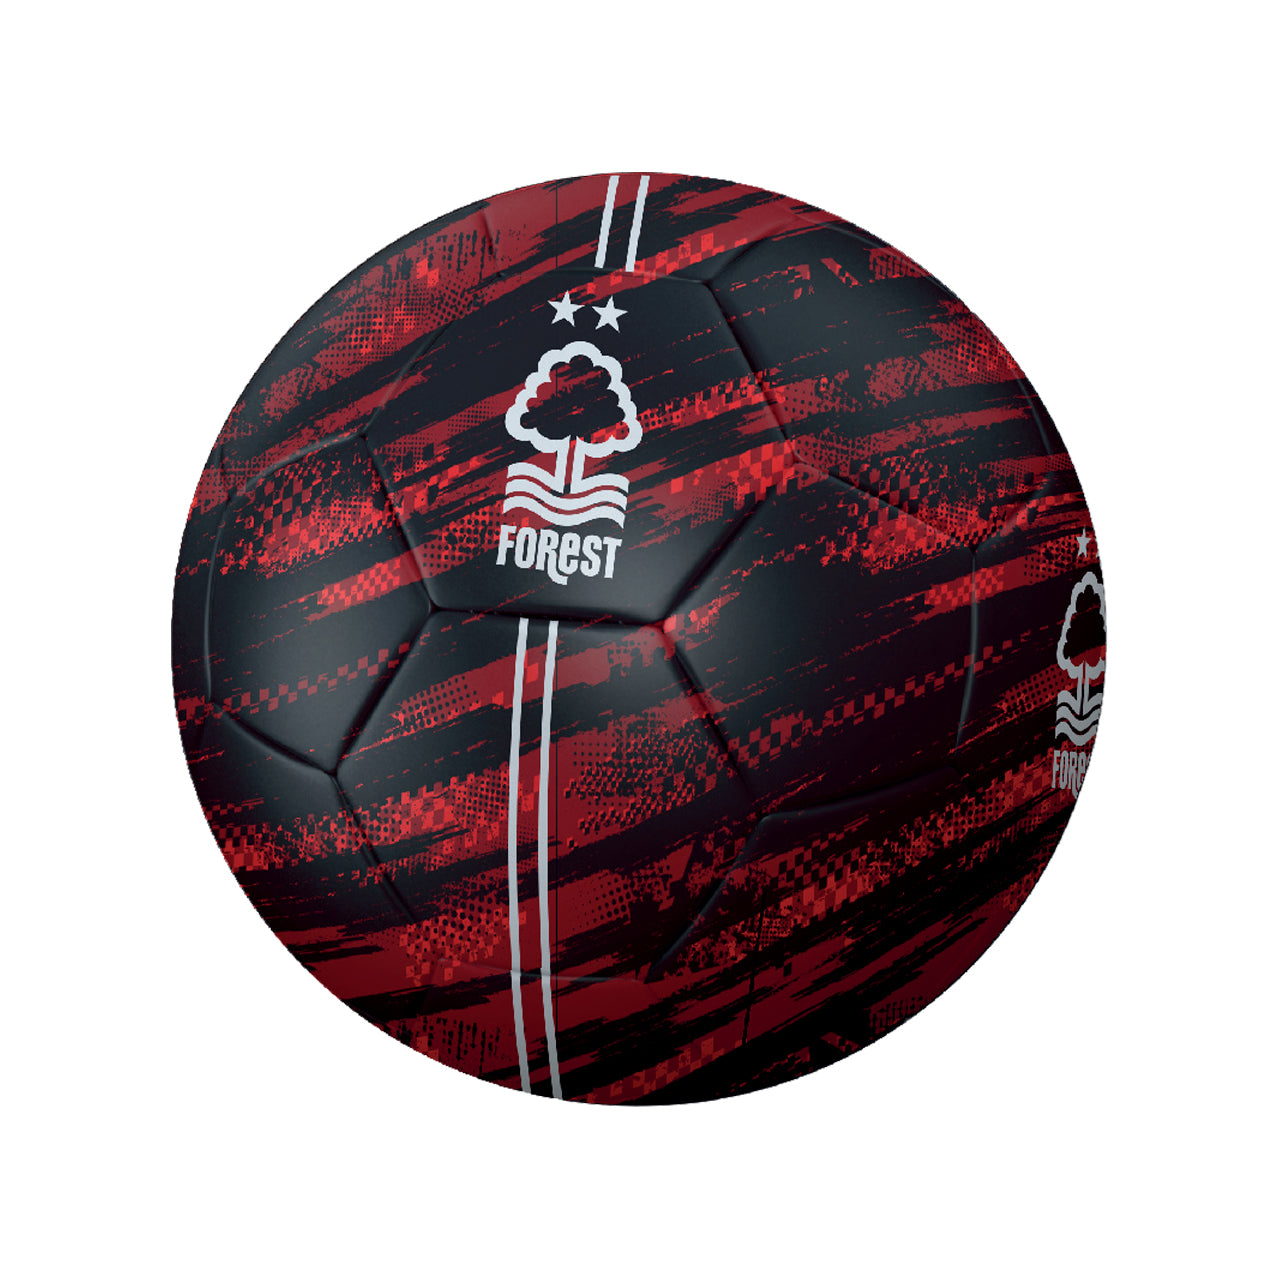 NFFC Black and Red Football - Size 5